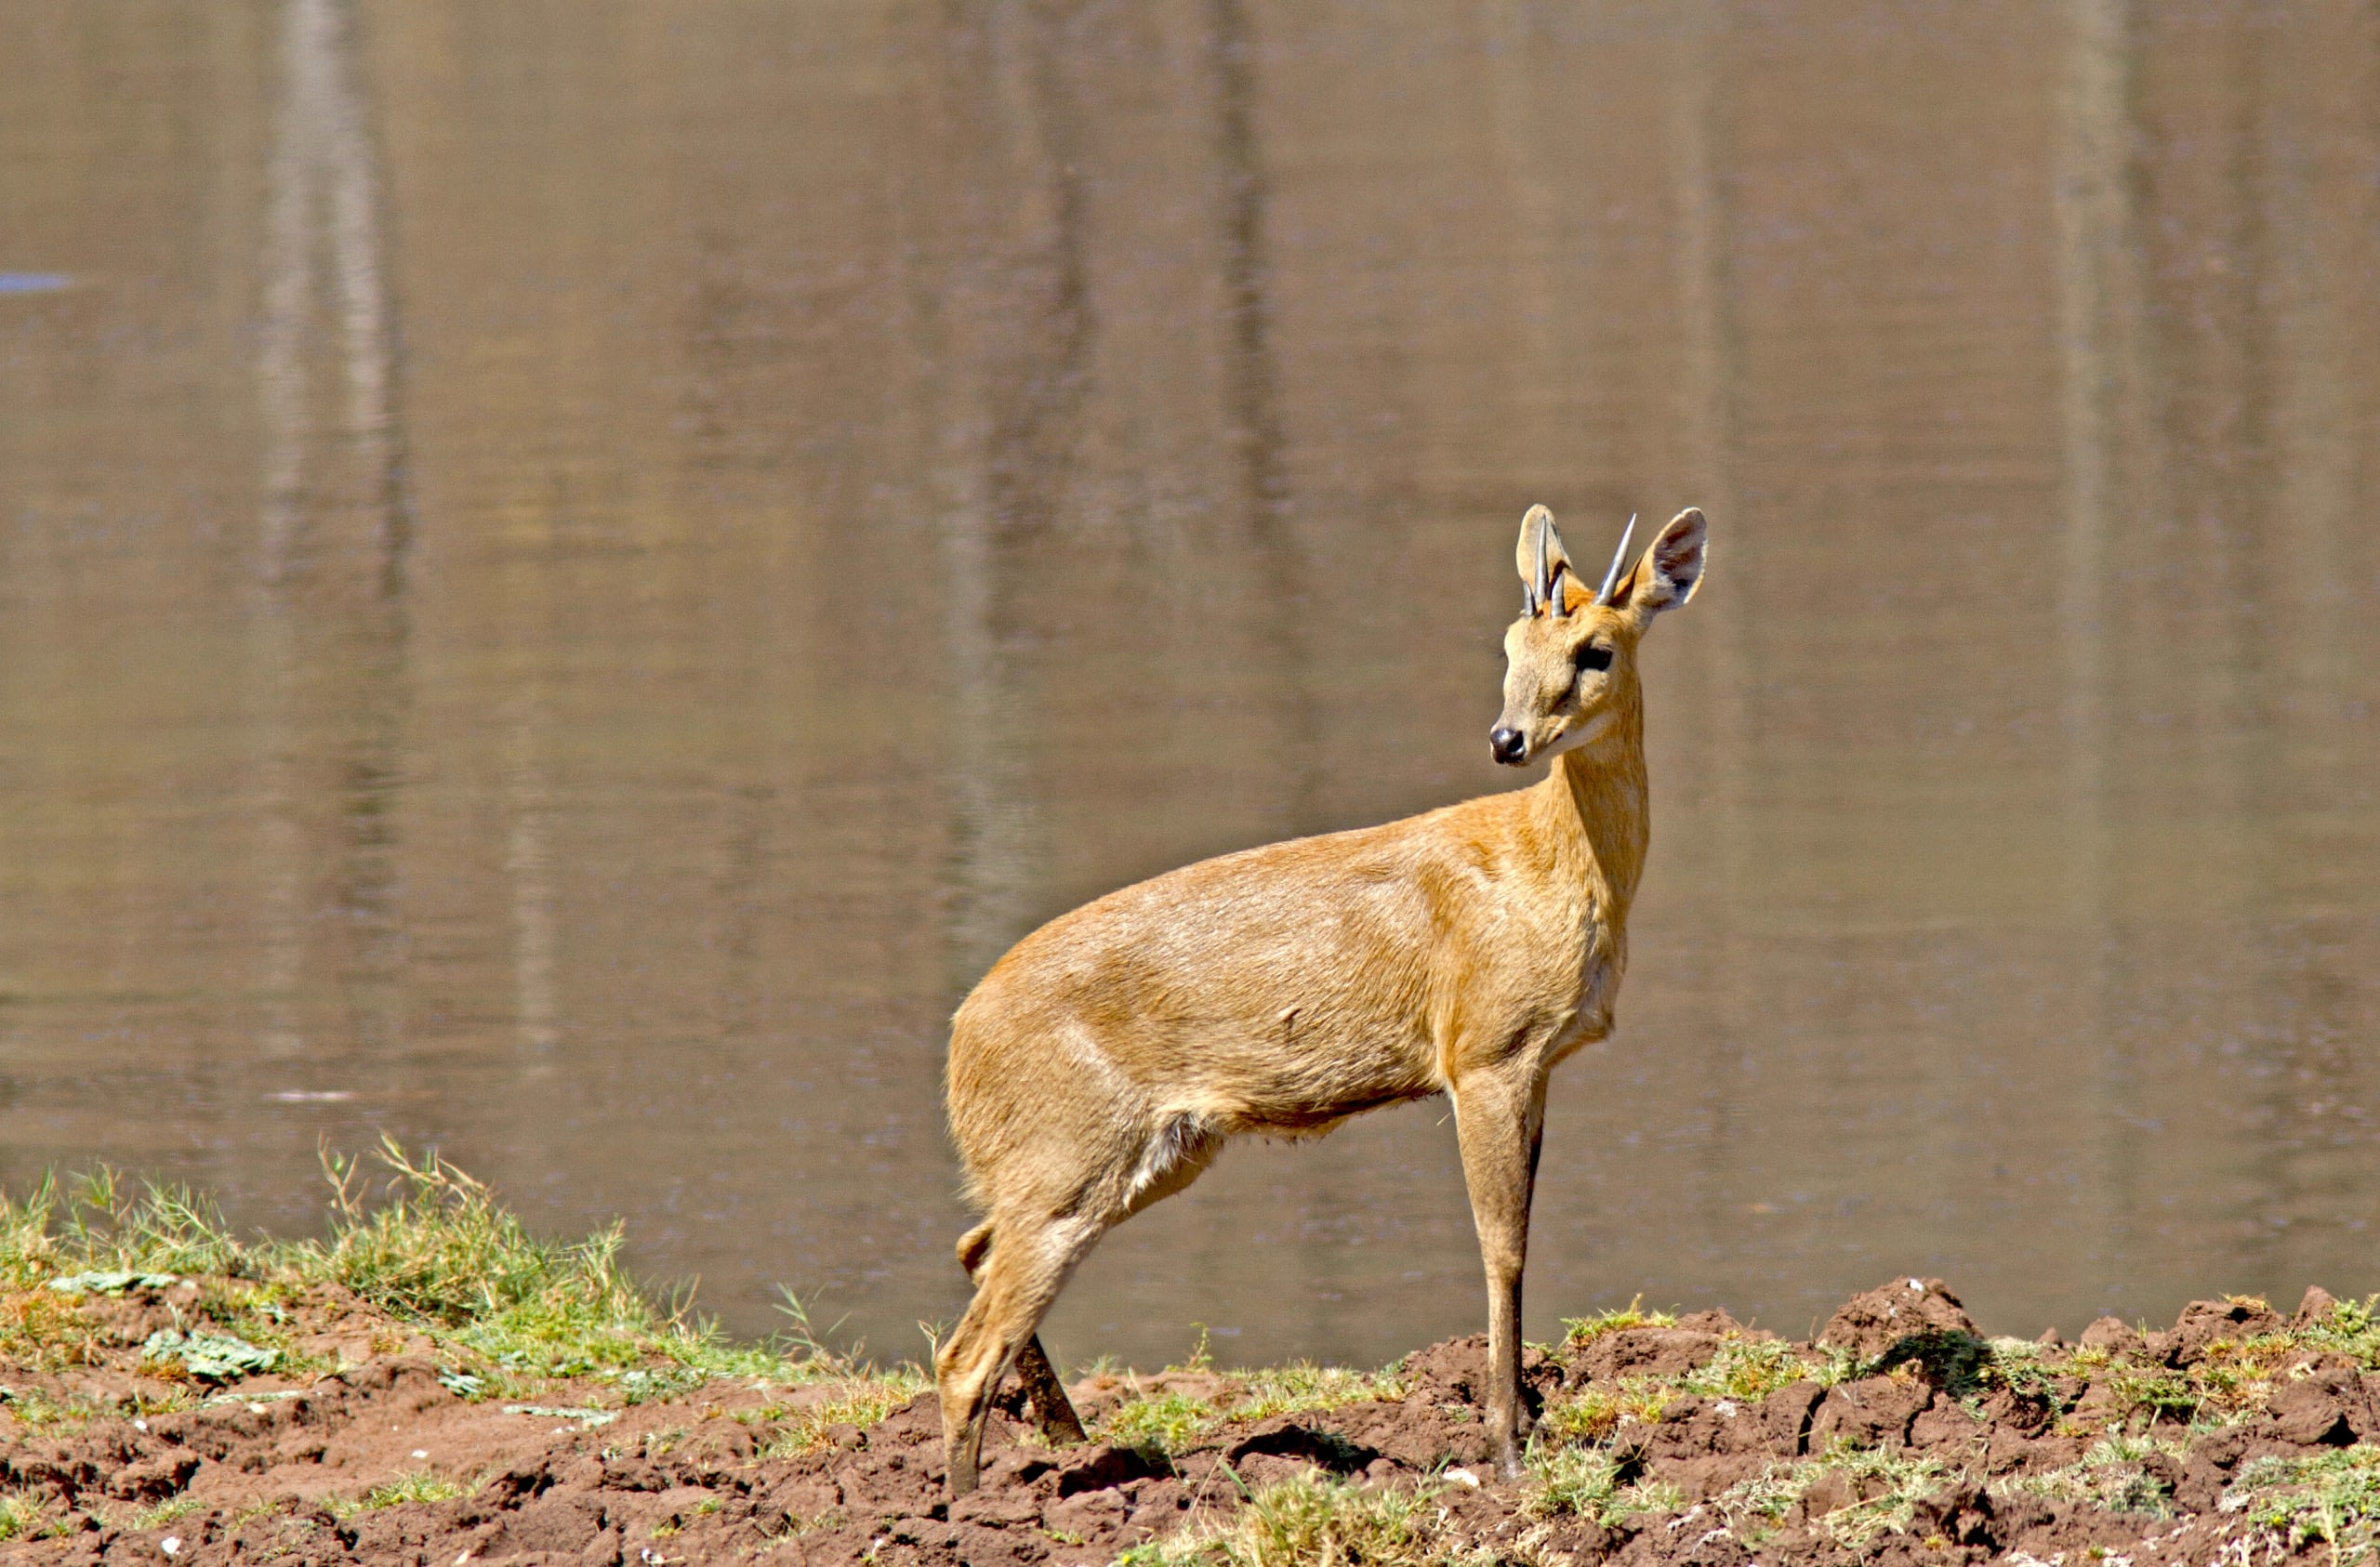 "The chousingha has a slender body and yellowish-brown to reddish coat and a short tail. It prefers areas of dense undergrowth where it can hide when it feels threatened. Photo: Ashwin HP  Cover Photo: The four-horned antelope is endemic to the Indian subcontinent. Once common throughout the deciduous forests of Central India, it is now considered ""Vulnerable"" on the IUCN Red List. Cover Photo: Phalgun Patel"